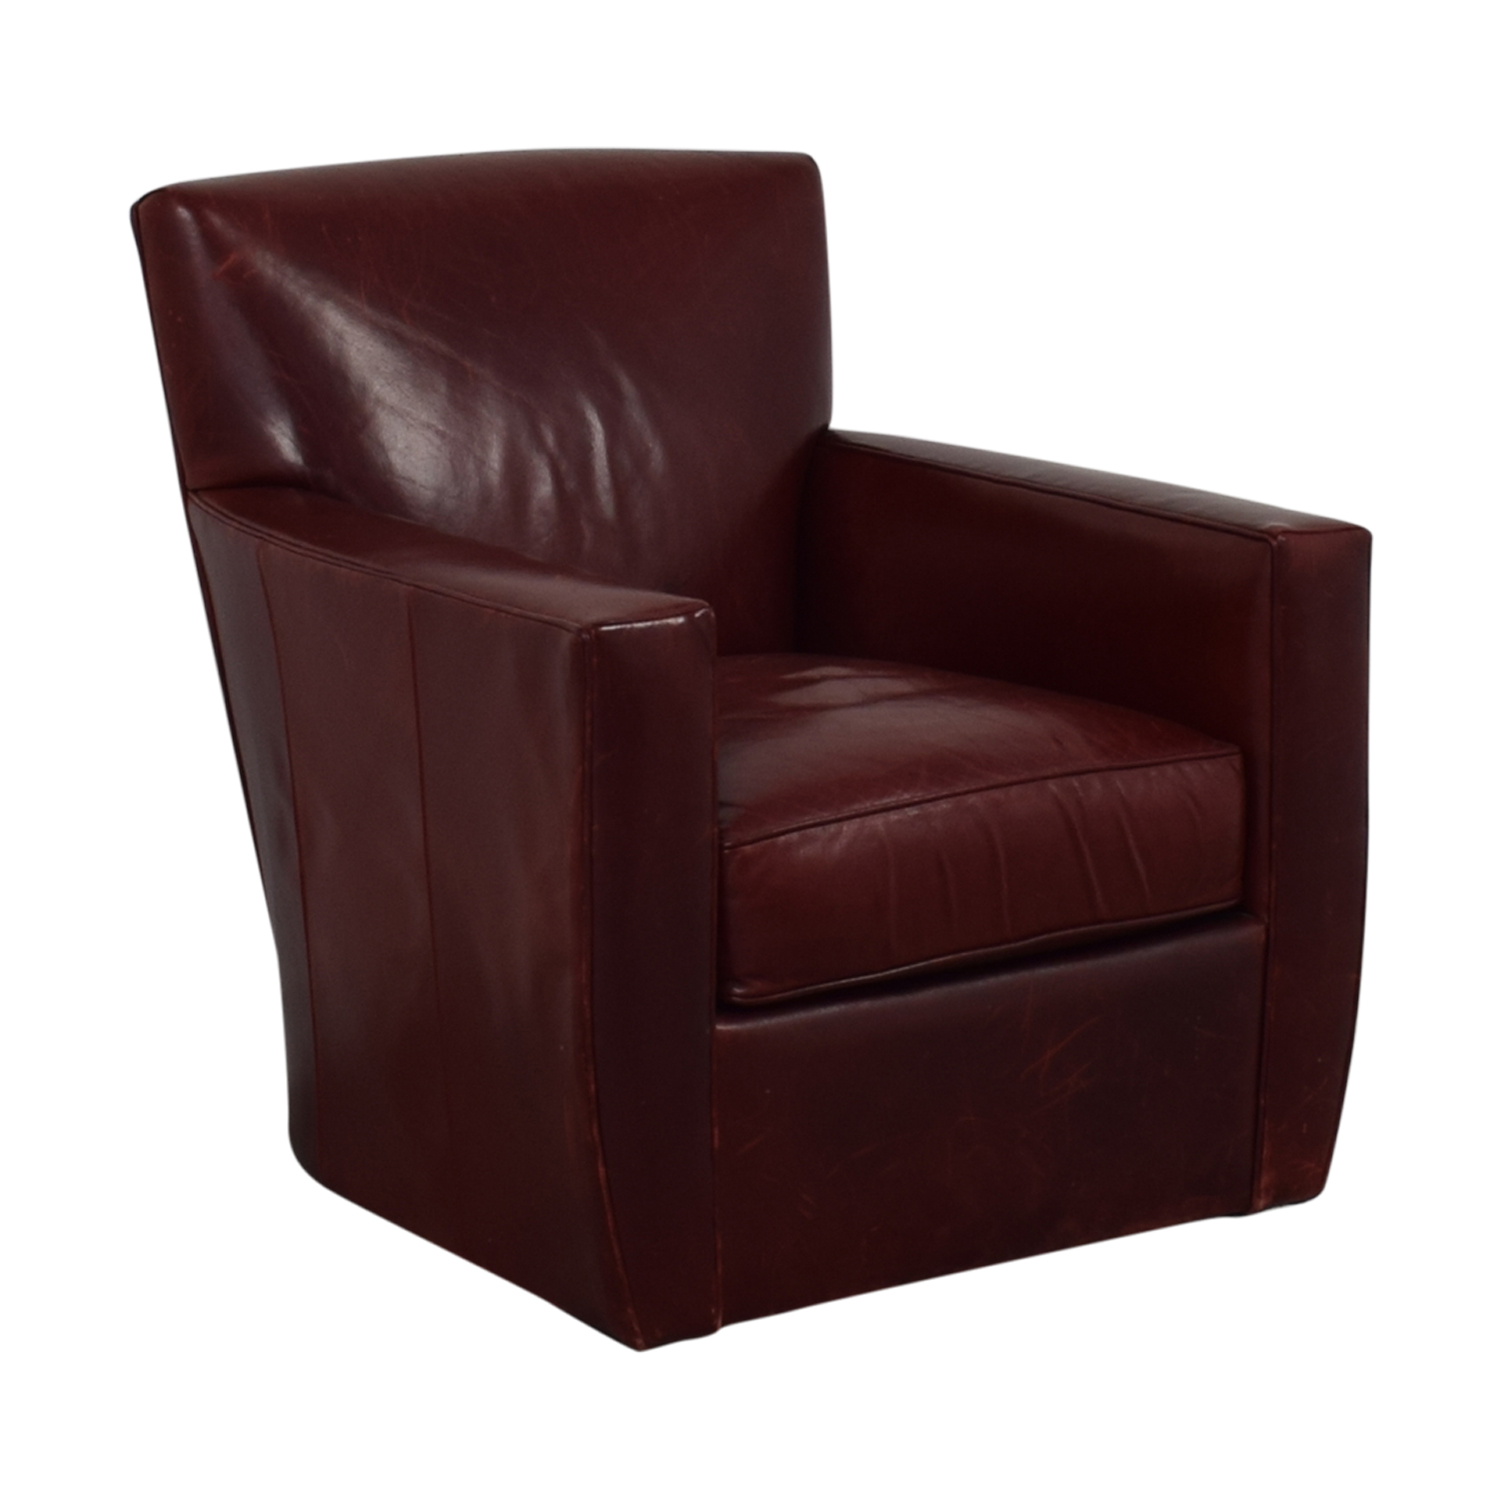 Crate & Barrel Swivel Red Accent Chair / Chairs